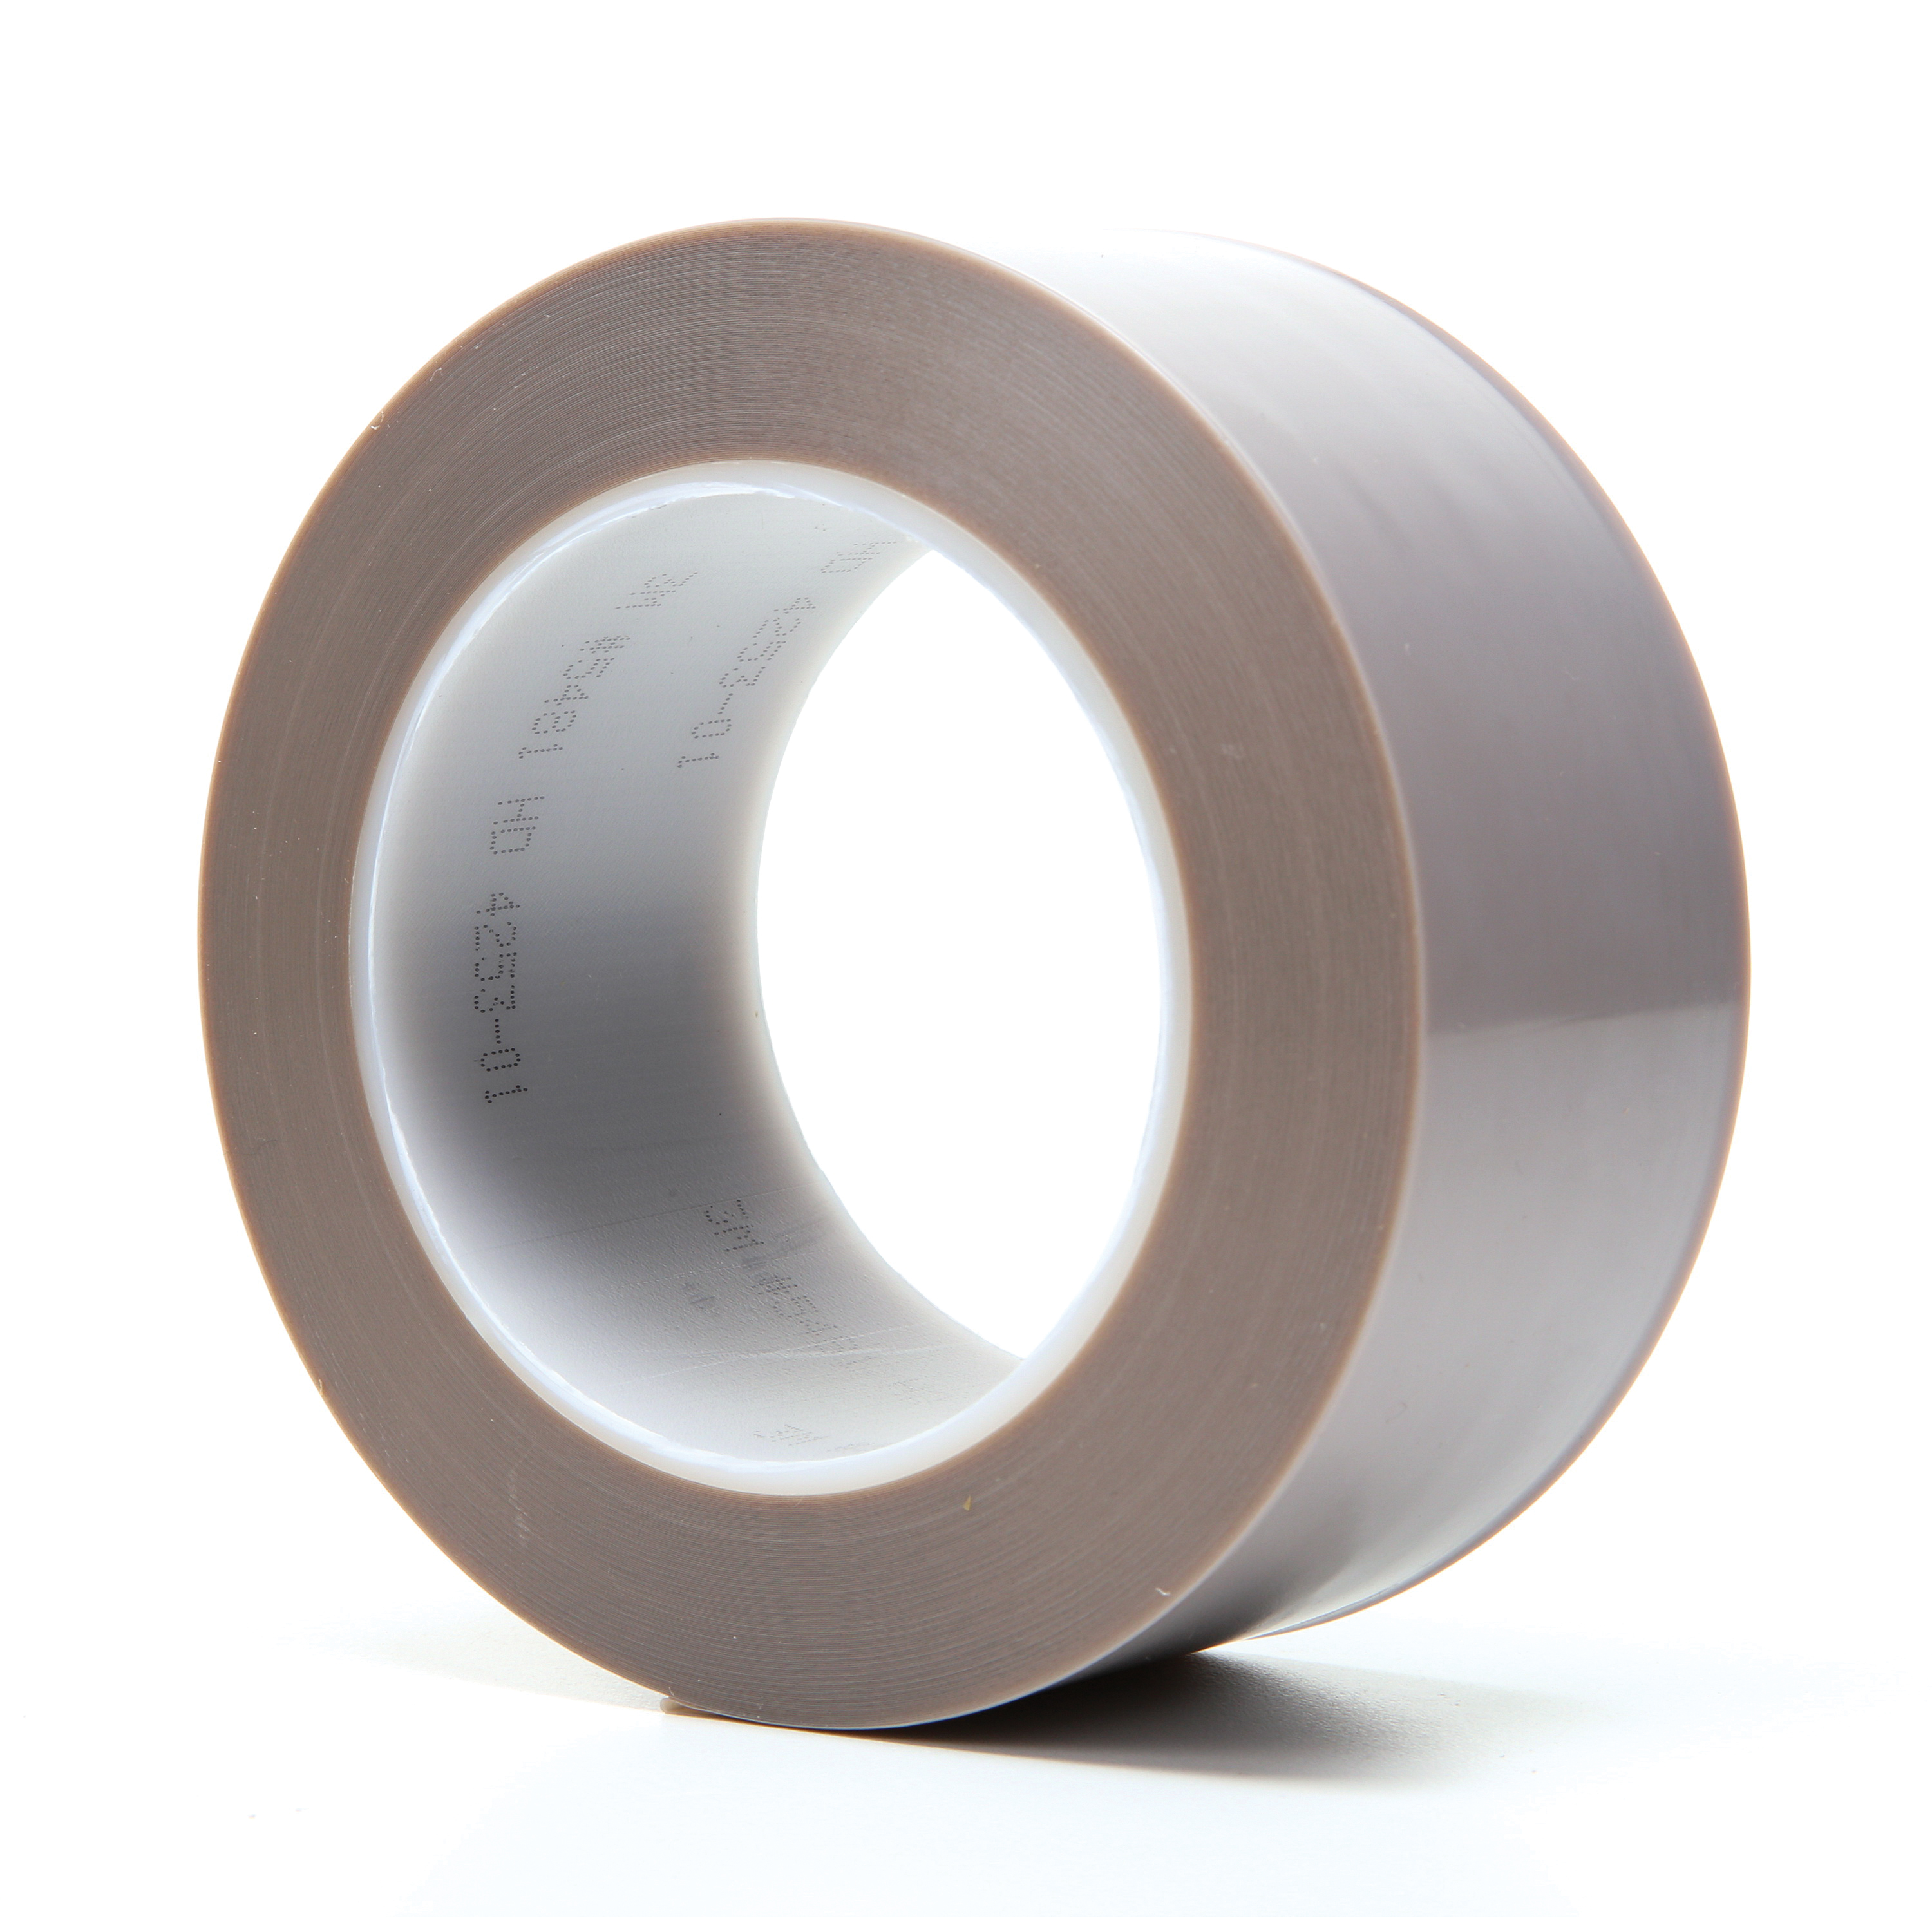 3M™ 021200-16132 Heavy Duty Film Tape, 36 yd L x 2 in W, 6.8 mil THK, Silicon Adhesive, Skived PTFE Backing, Gray